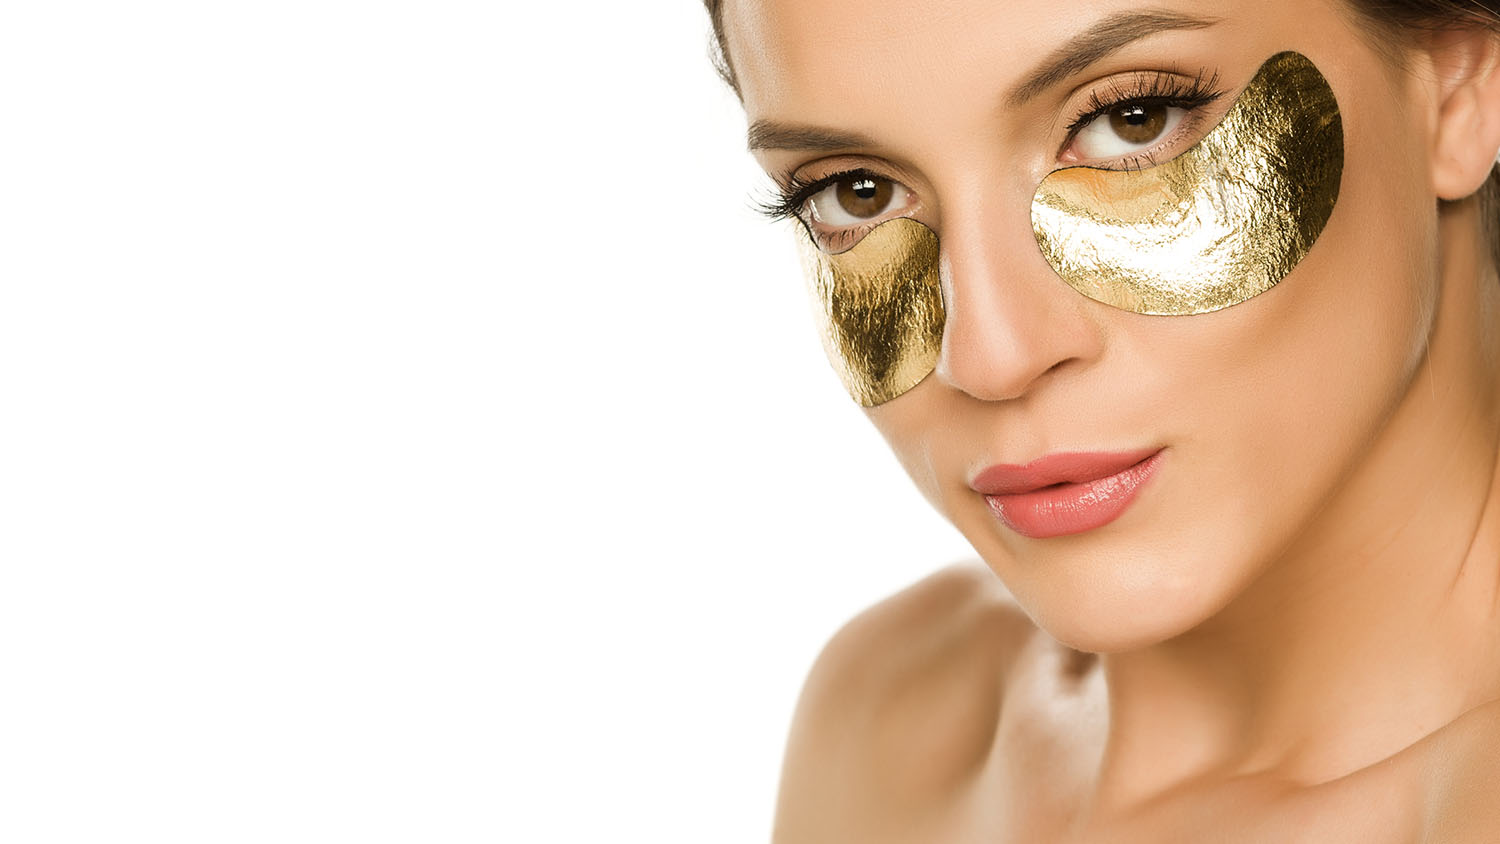 14 Under Eye Mask Options to Help You Get Rid of Puffiness and Bags